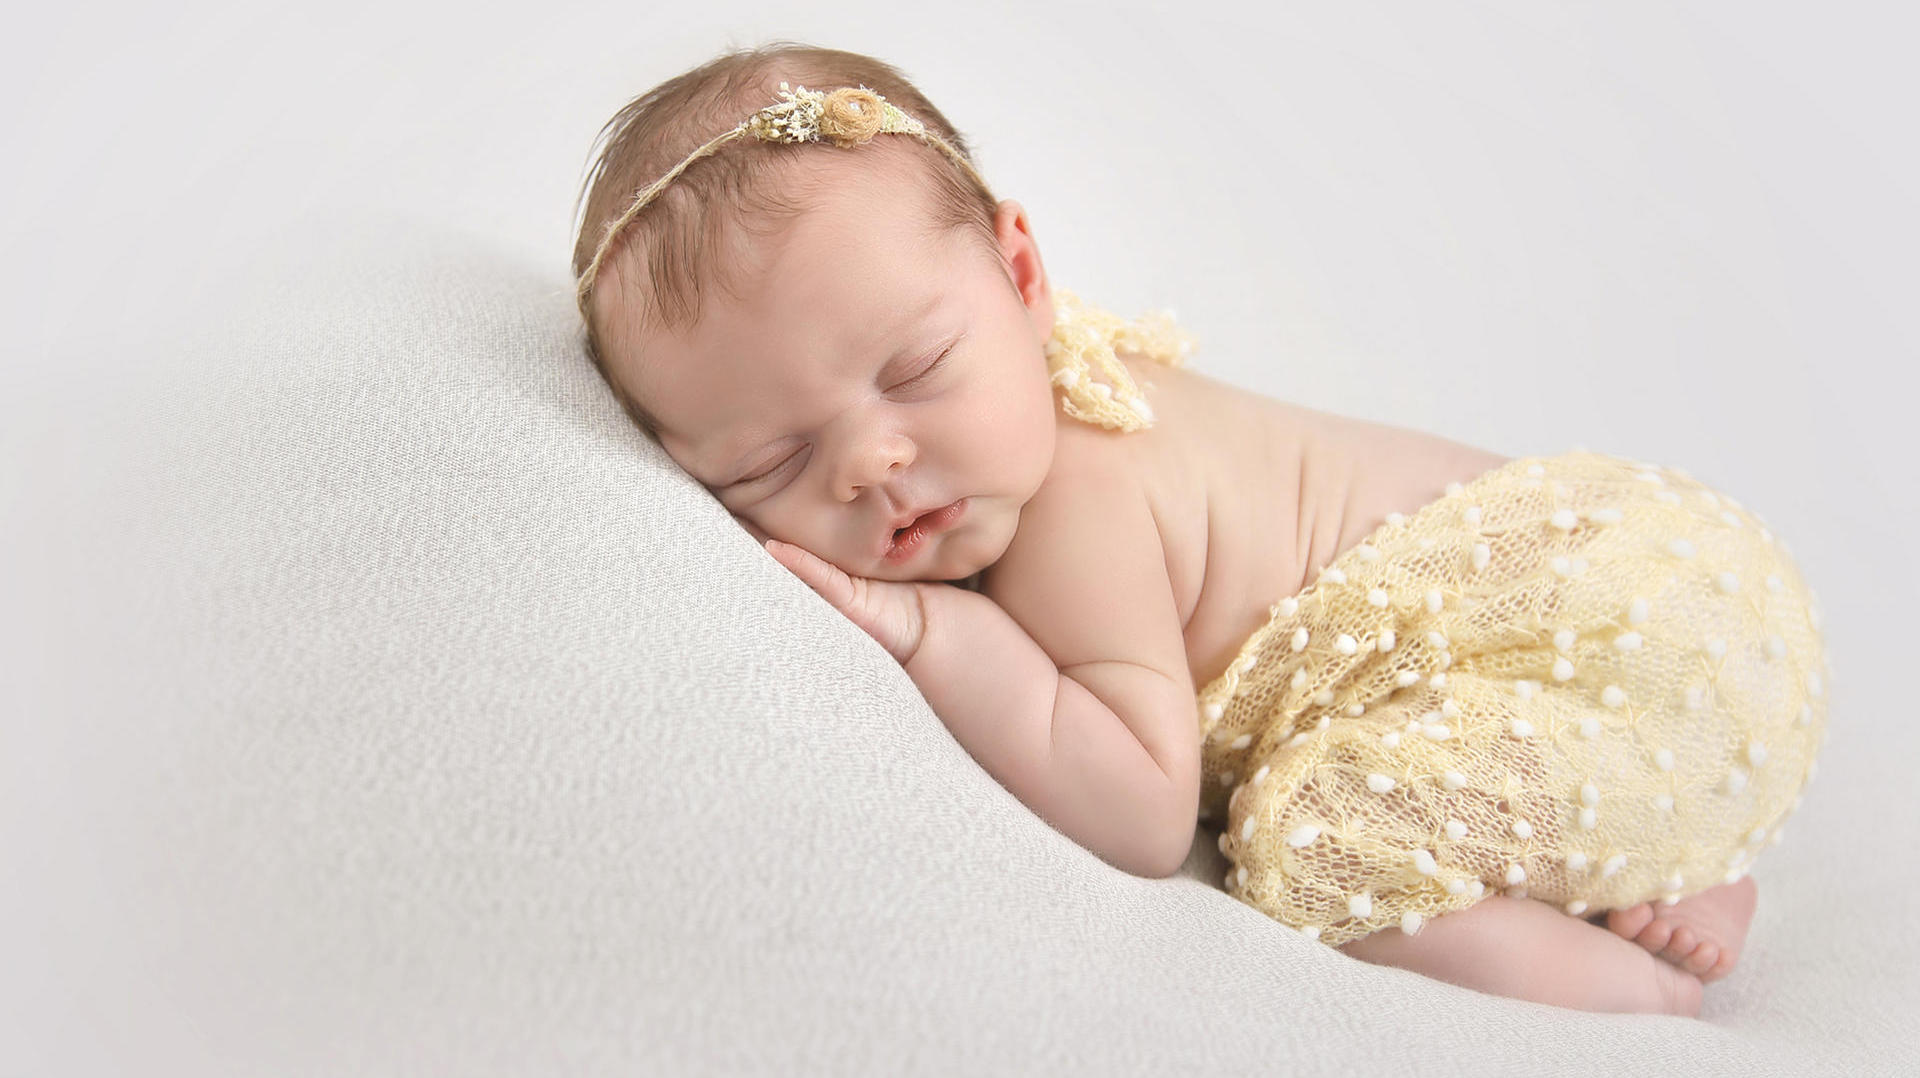 Baby Fotoshooting Ideen Süße Babyfotos So Läuft Ein Newborn Shooting Ab